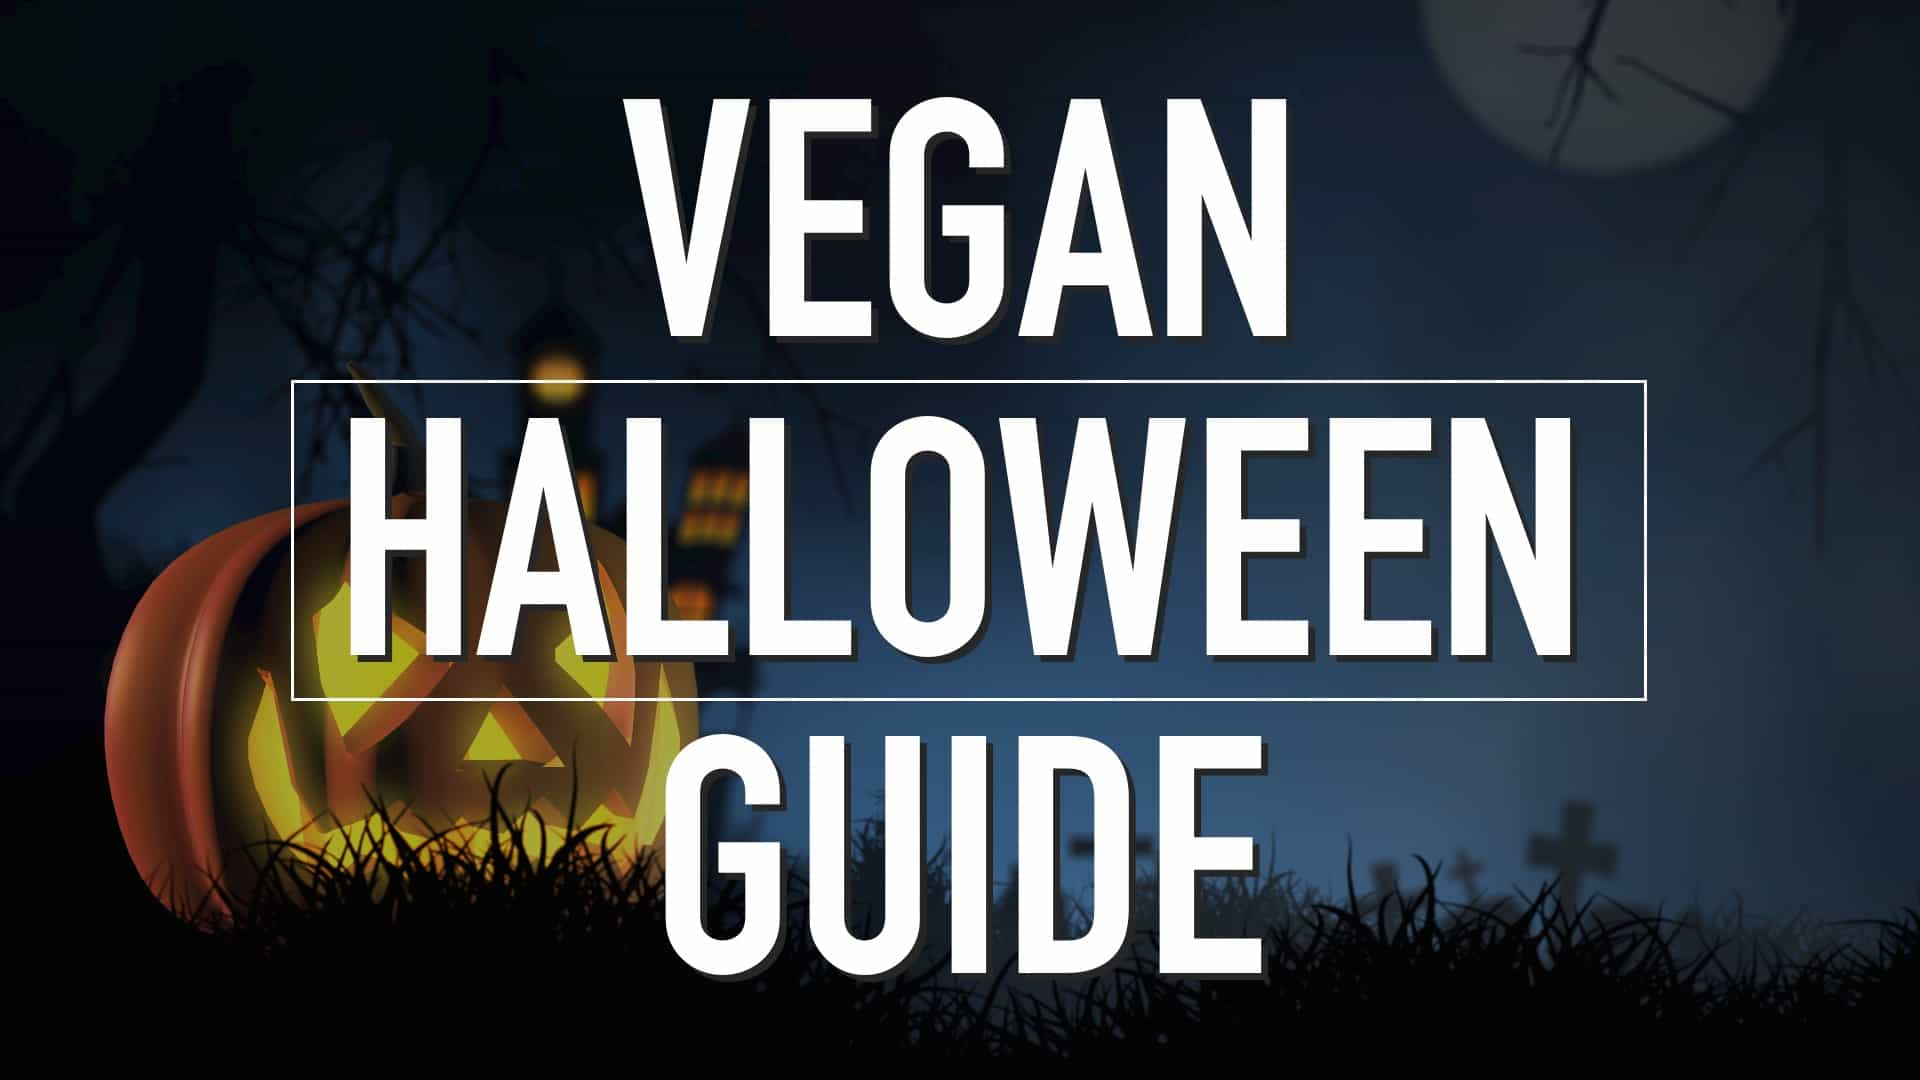 """The text """"Vegan Halloween Guide"""" centered over an image of a jack-o'-lantern in a cemetery at night."""